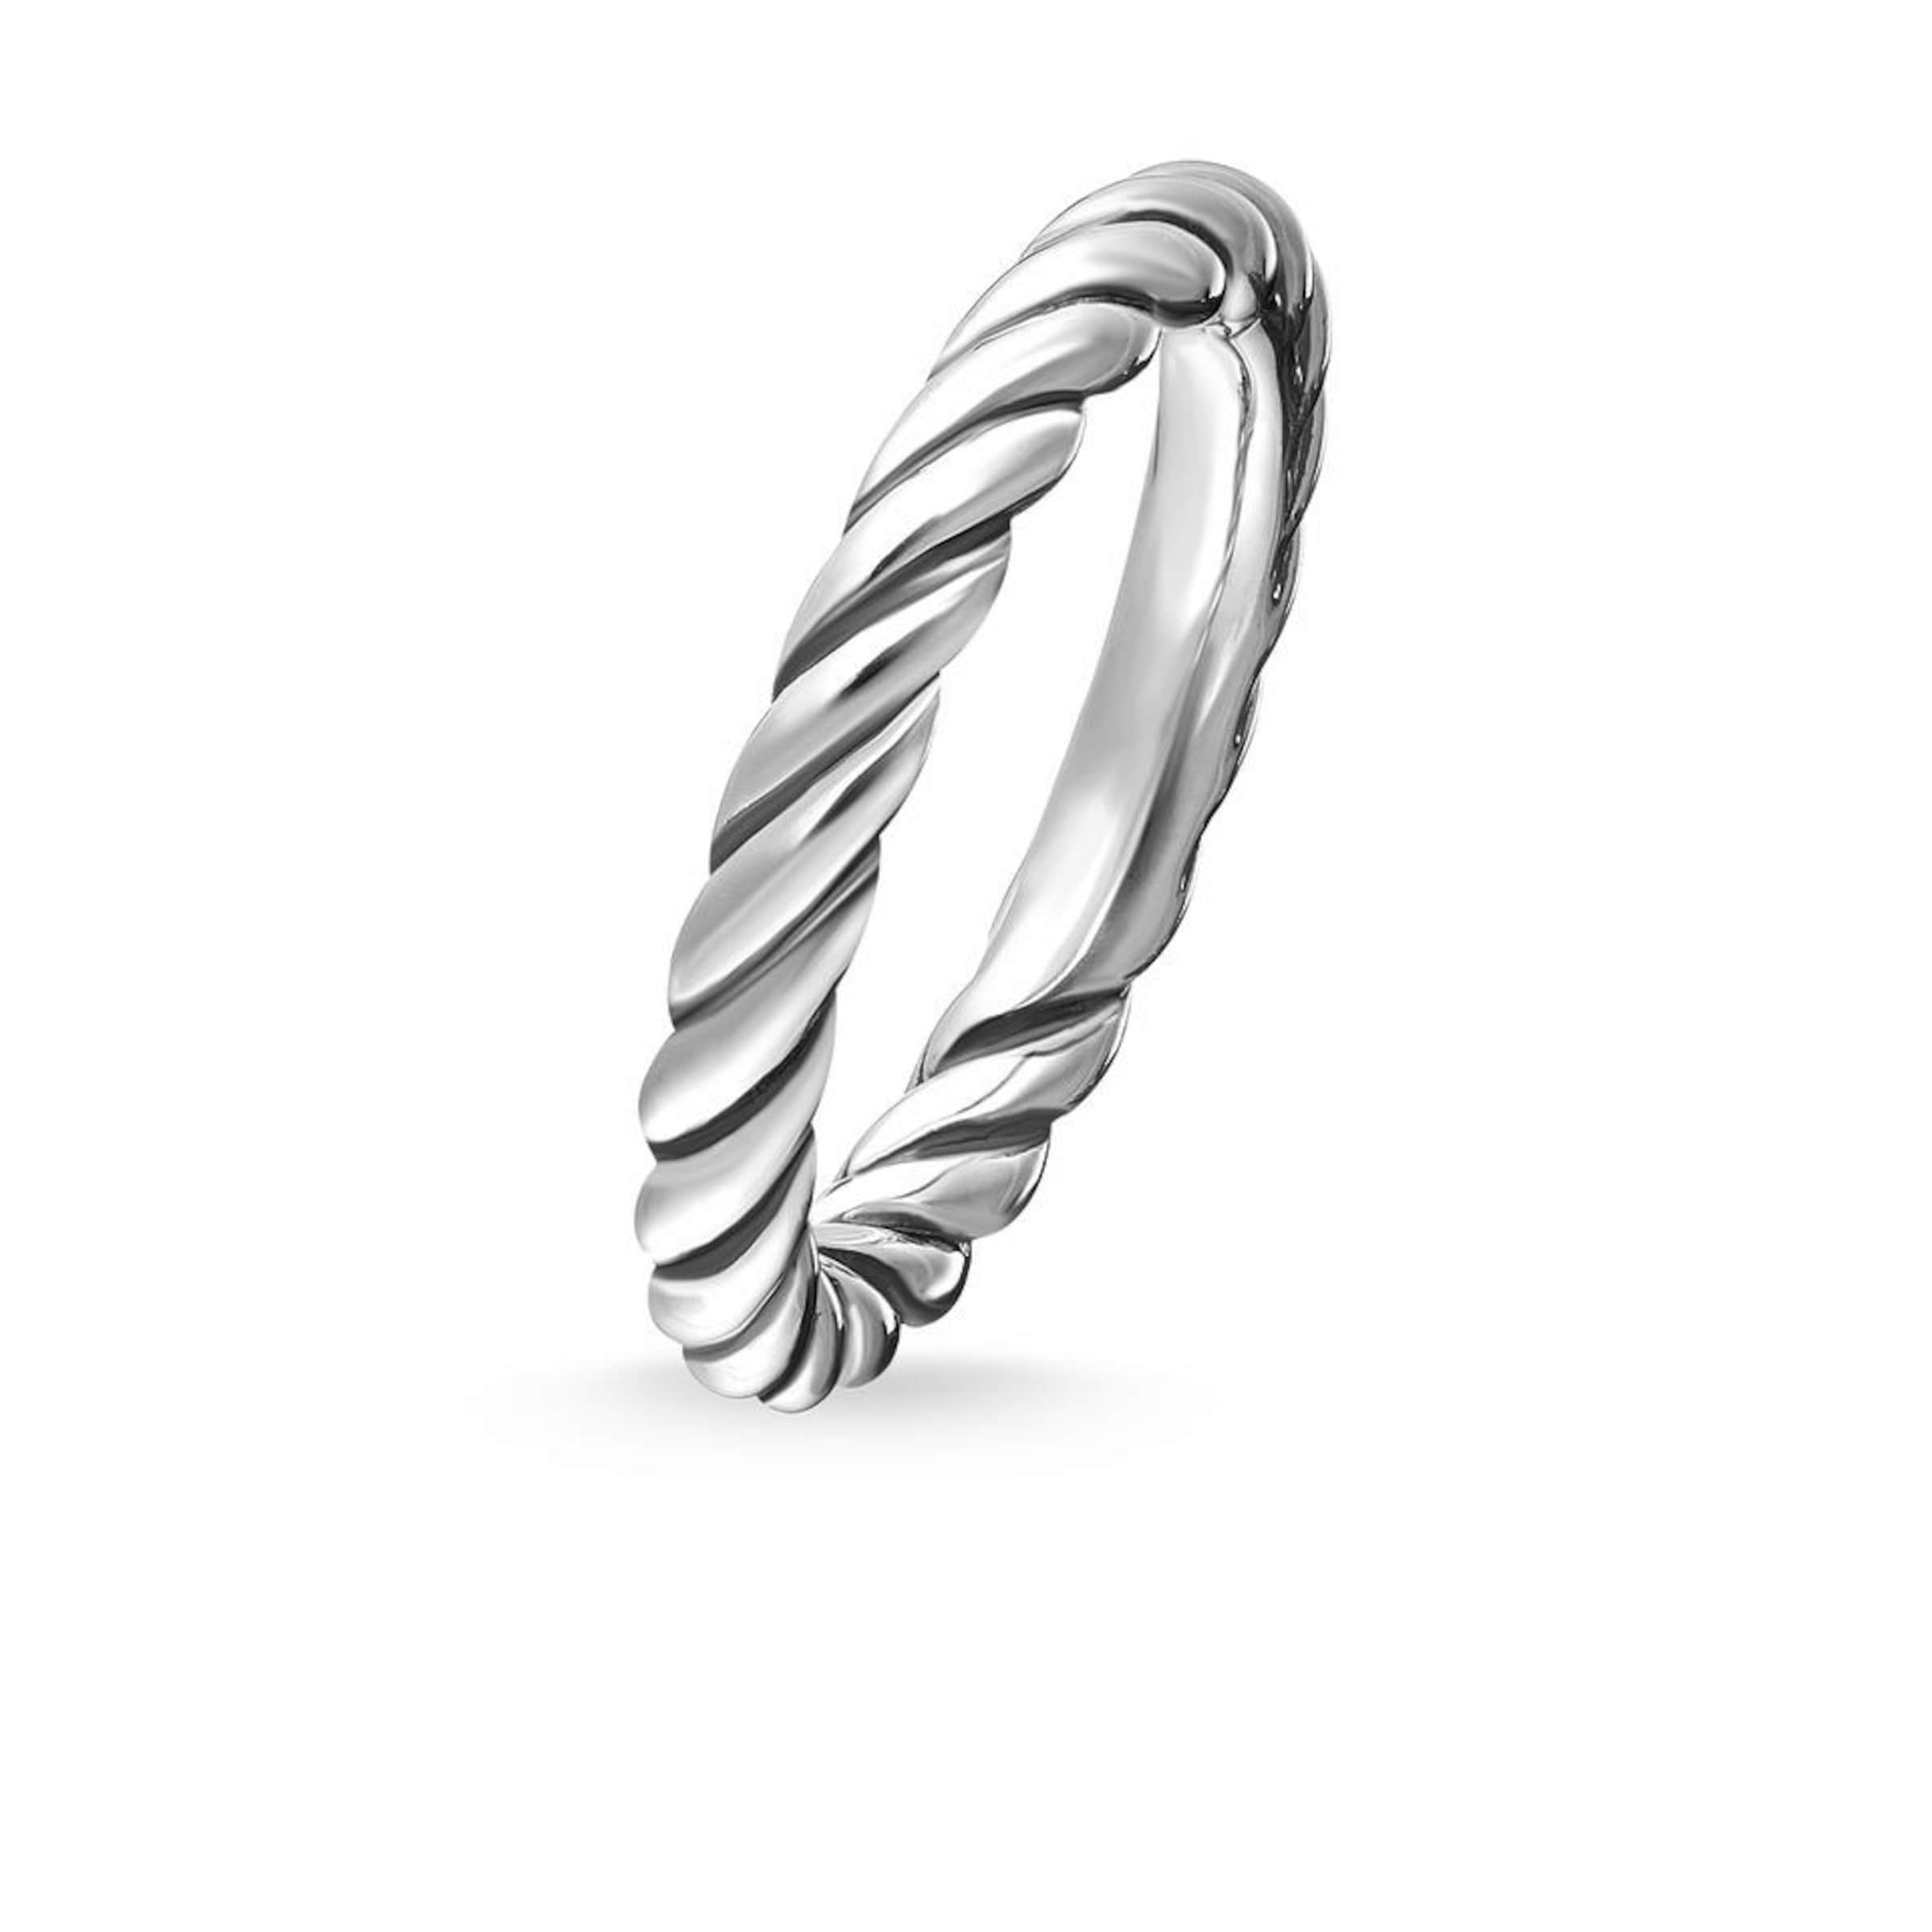 Silber Fingerring Sabo In Silber In Thomas Sabo Fingerring Fingerring Sabo Thomas Thomas BeWxdrCo